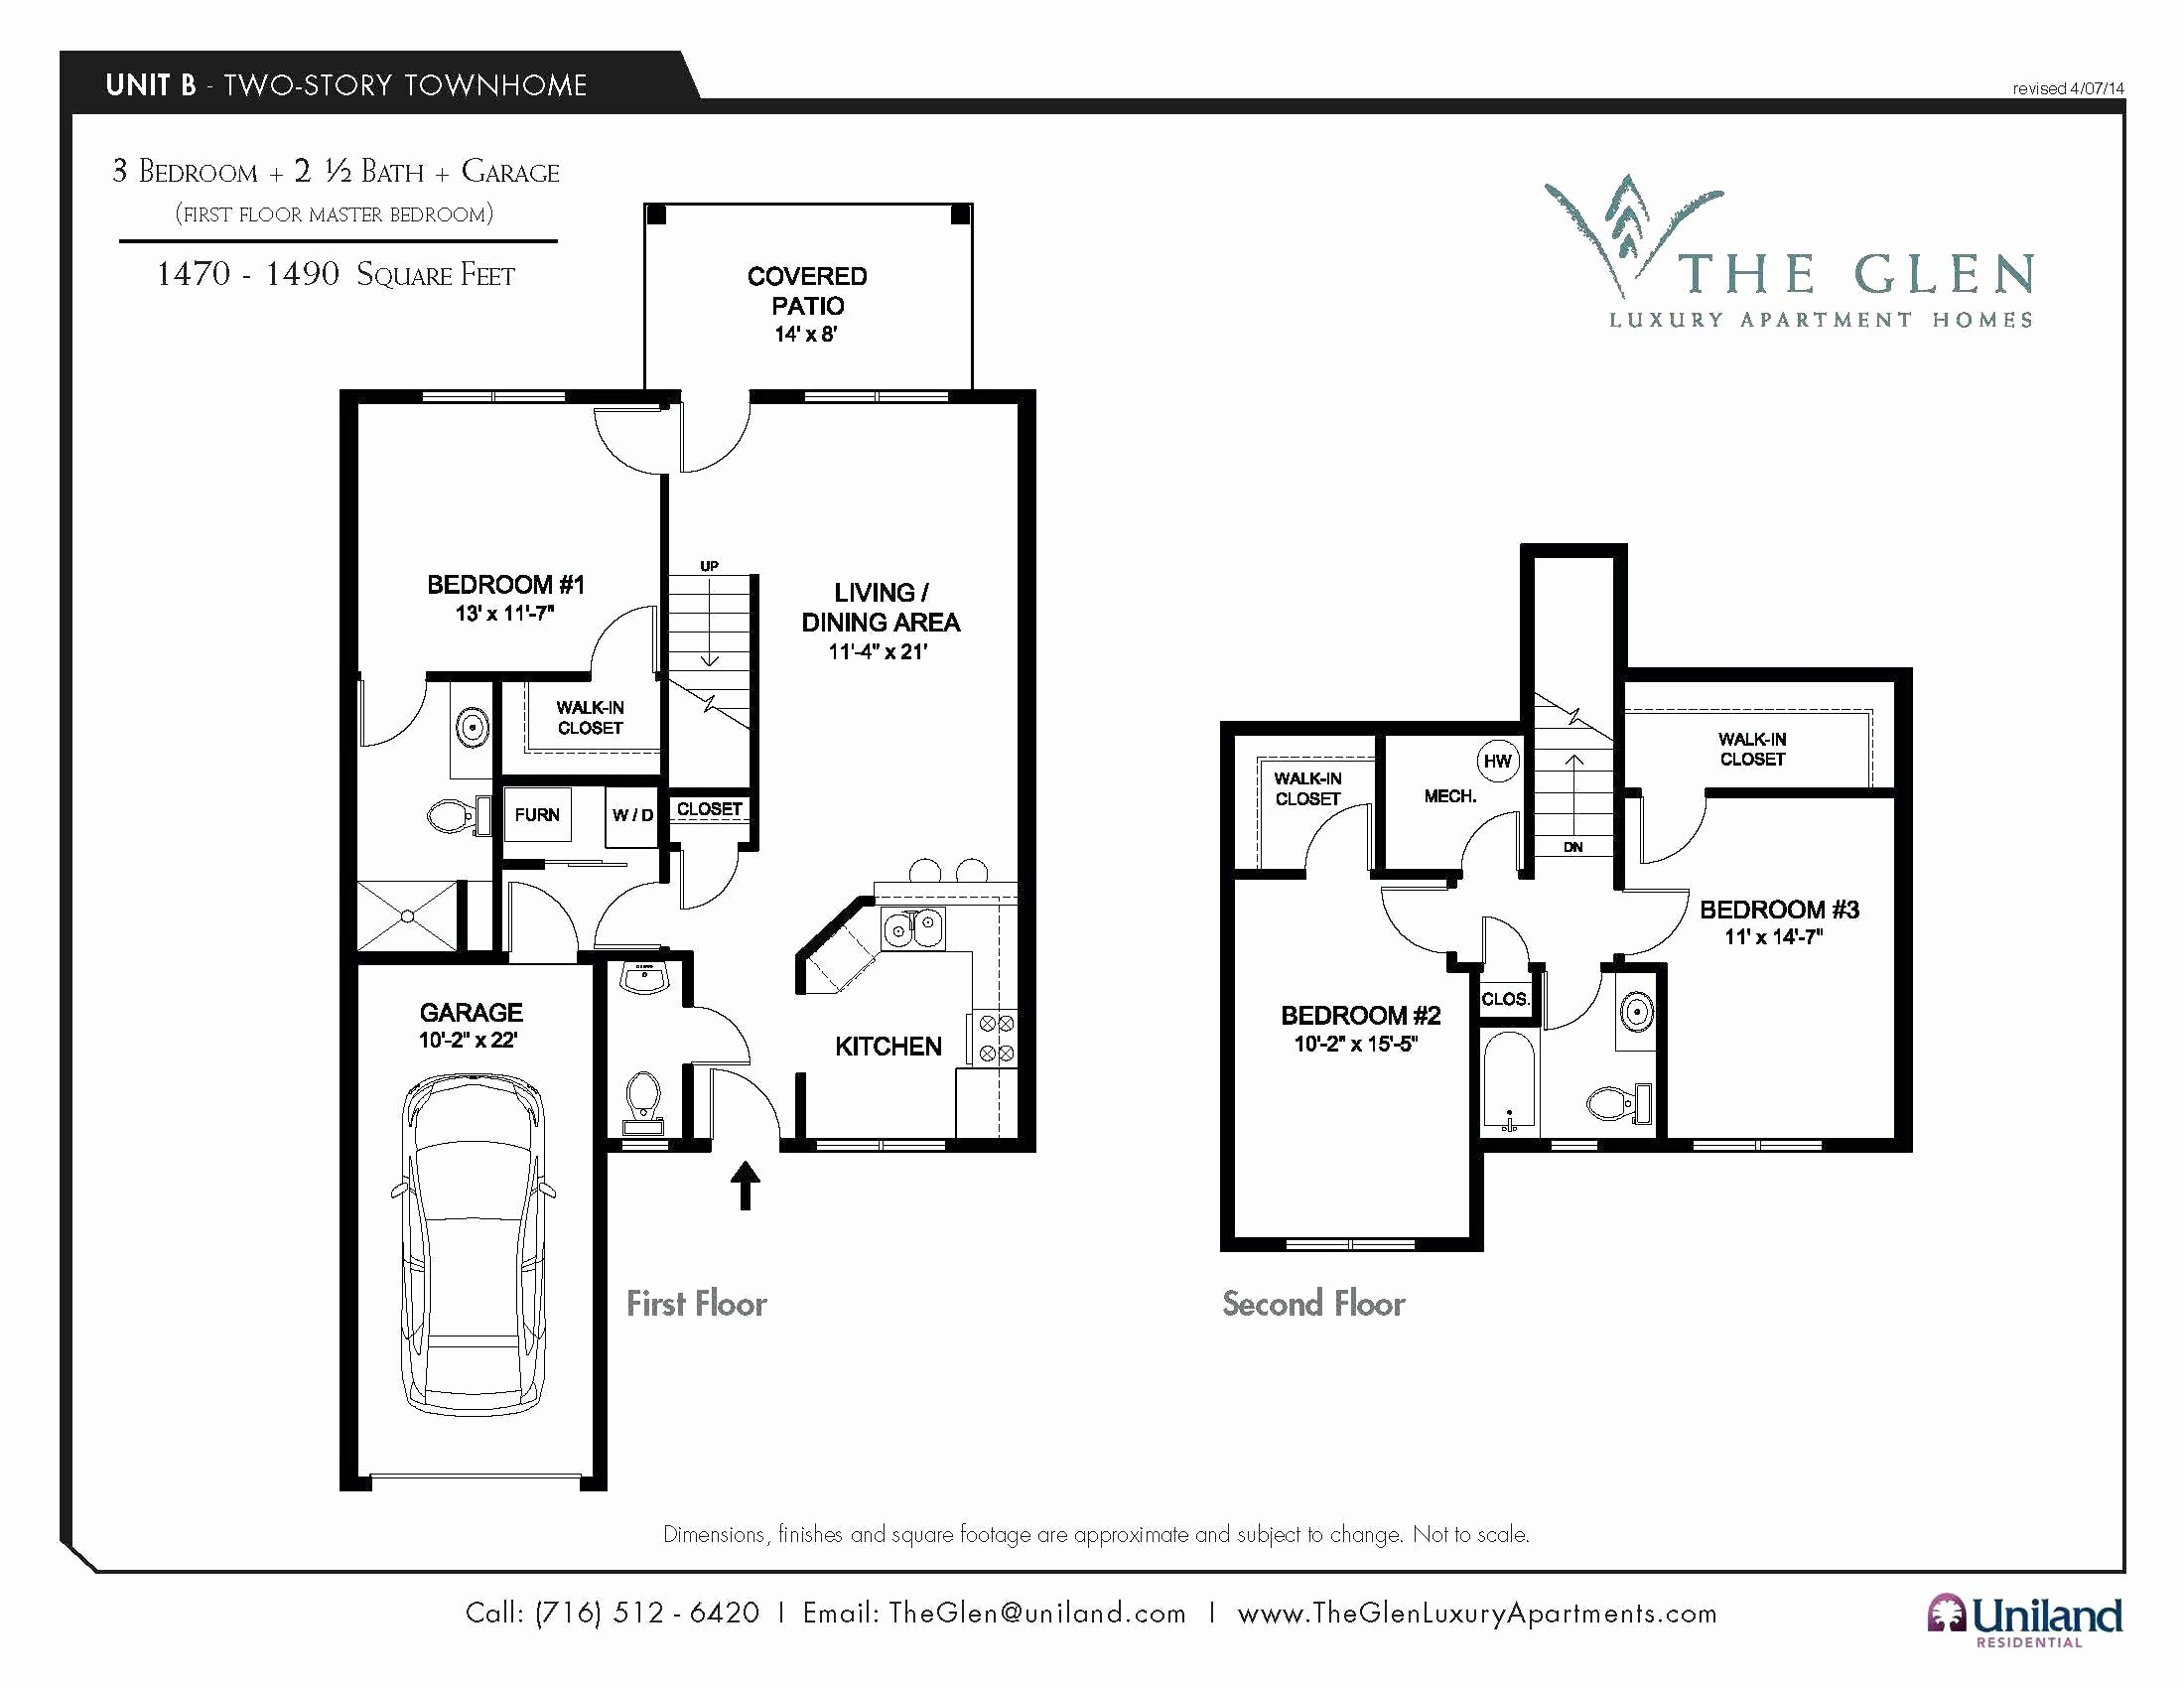 Visio Floor Plan Template Unique Visio Floor Plan Template Elegant 18 Elegant Visio Server